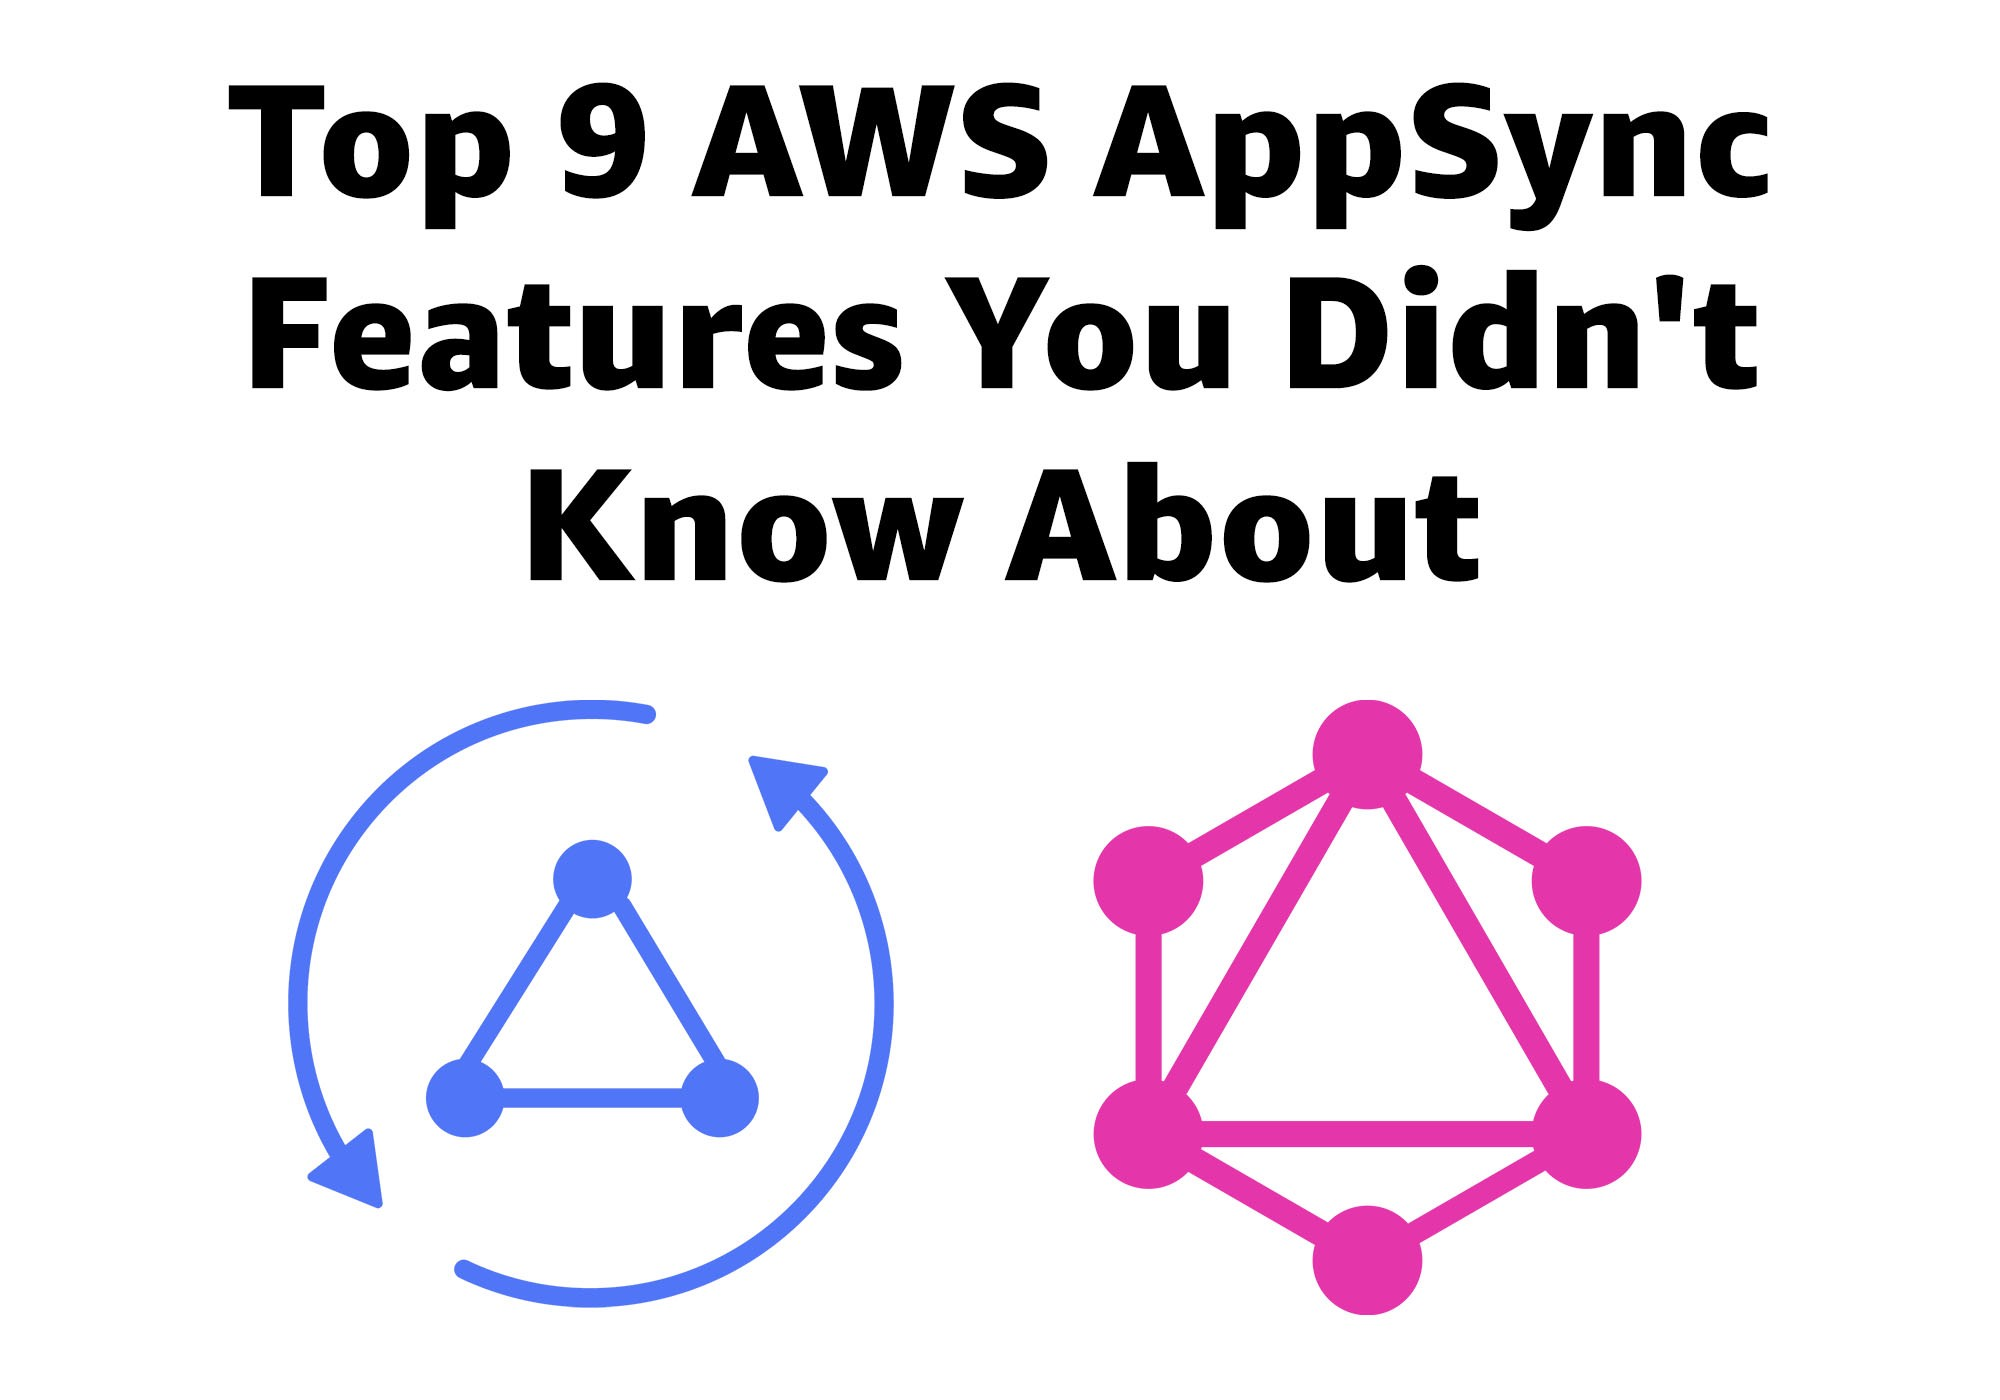 Top 9 AWS AppSync Features You Didn't Know About - Open GraphQL - Medium